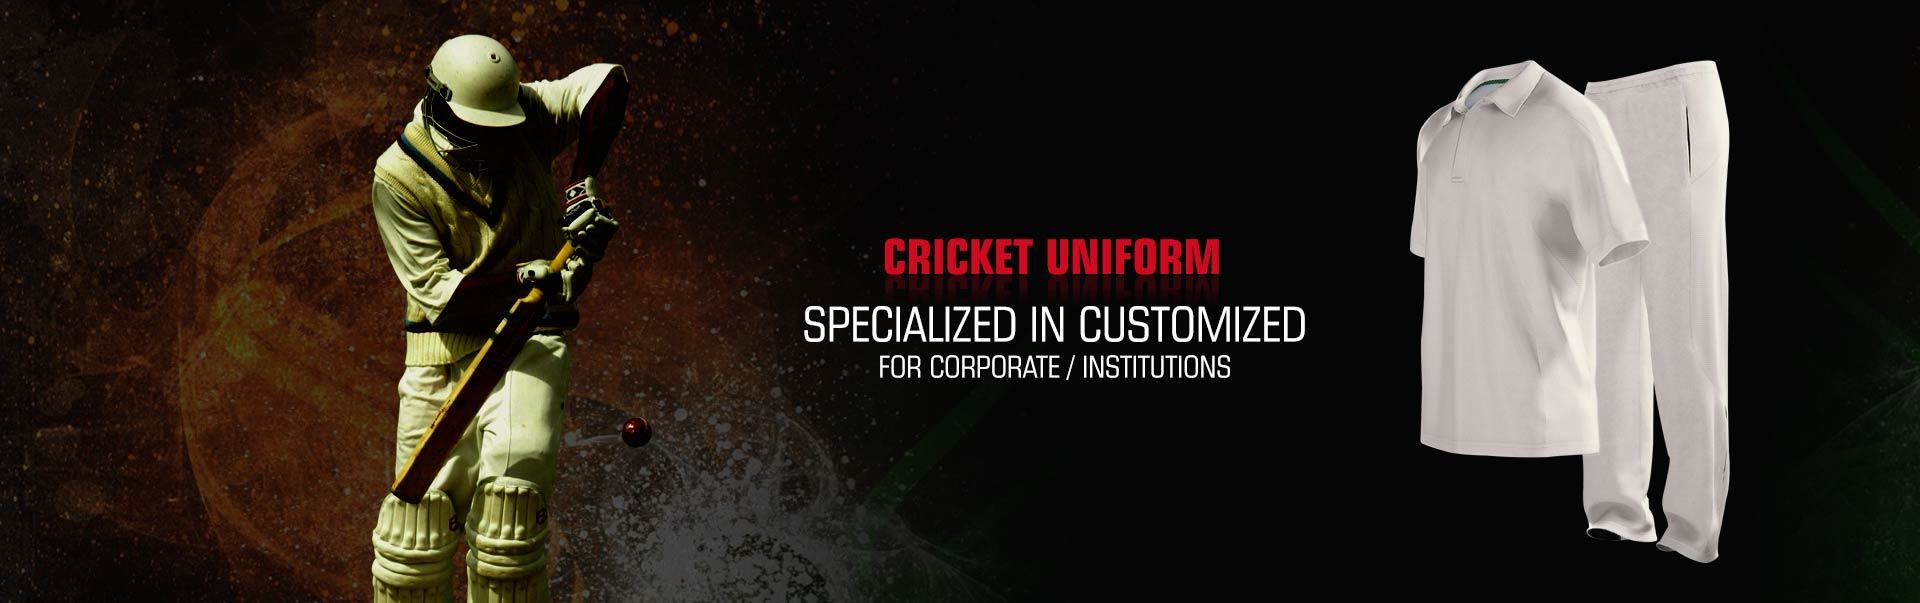 Cricket Uniform Wholesaler, Suppliers in Nakhodka